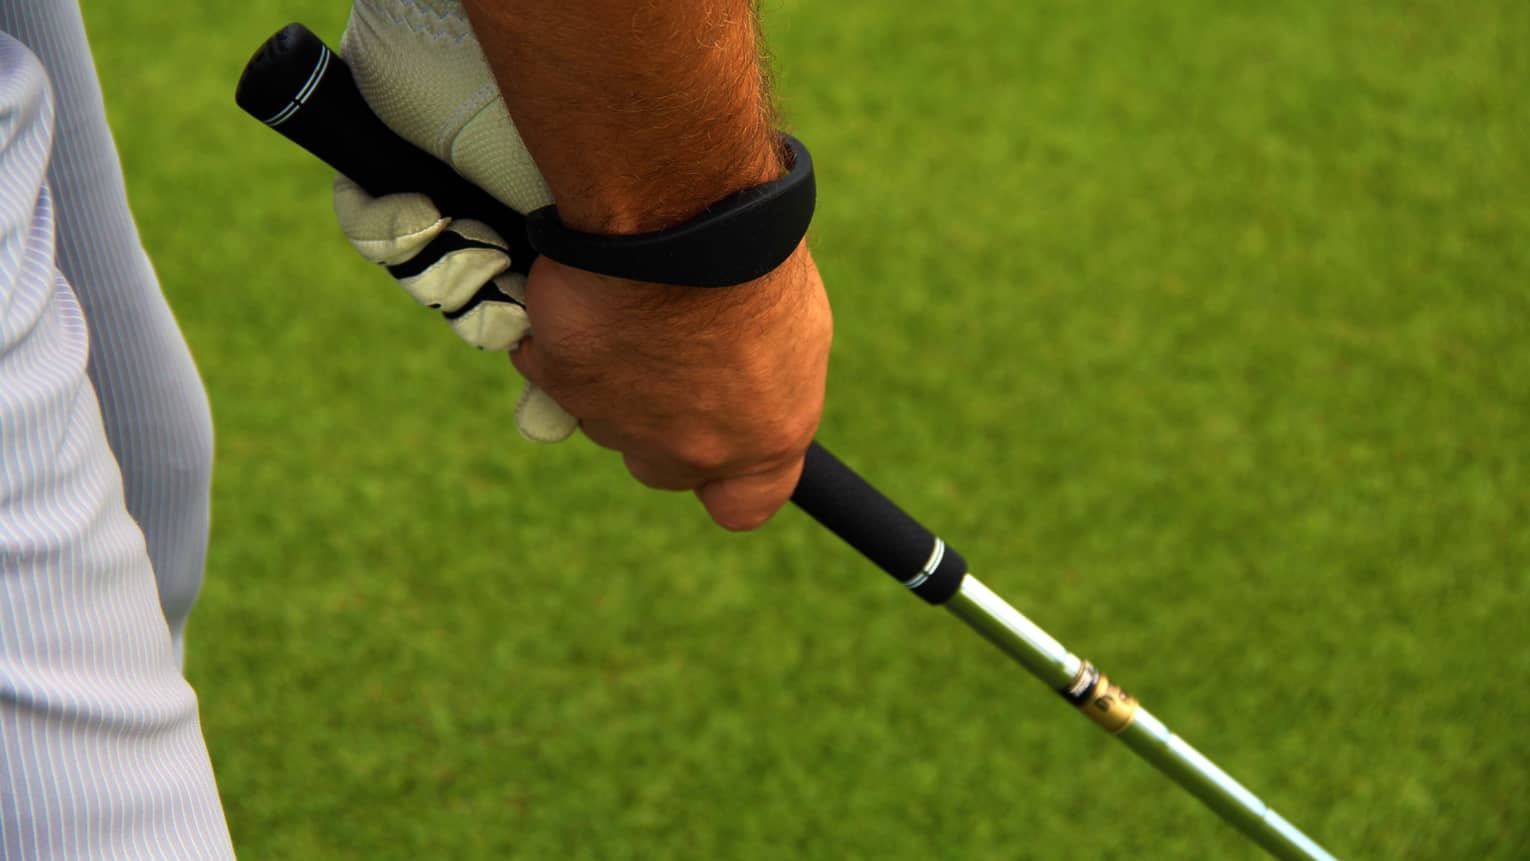 Close-up of hands gripping golf club on golf course green